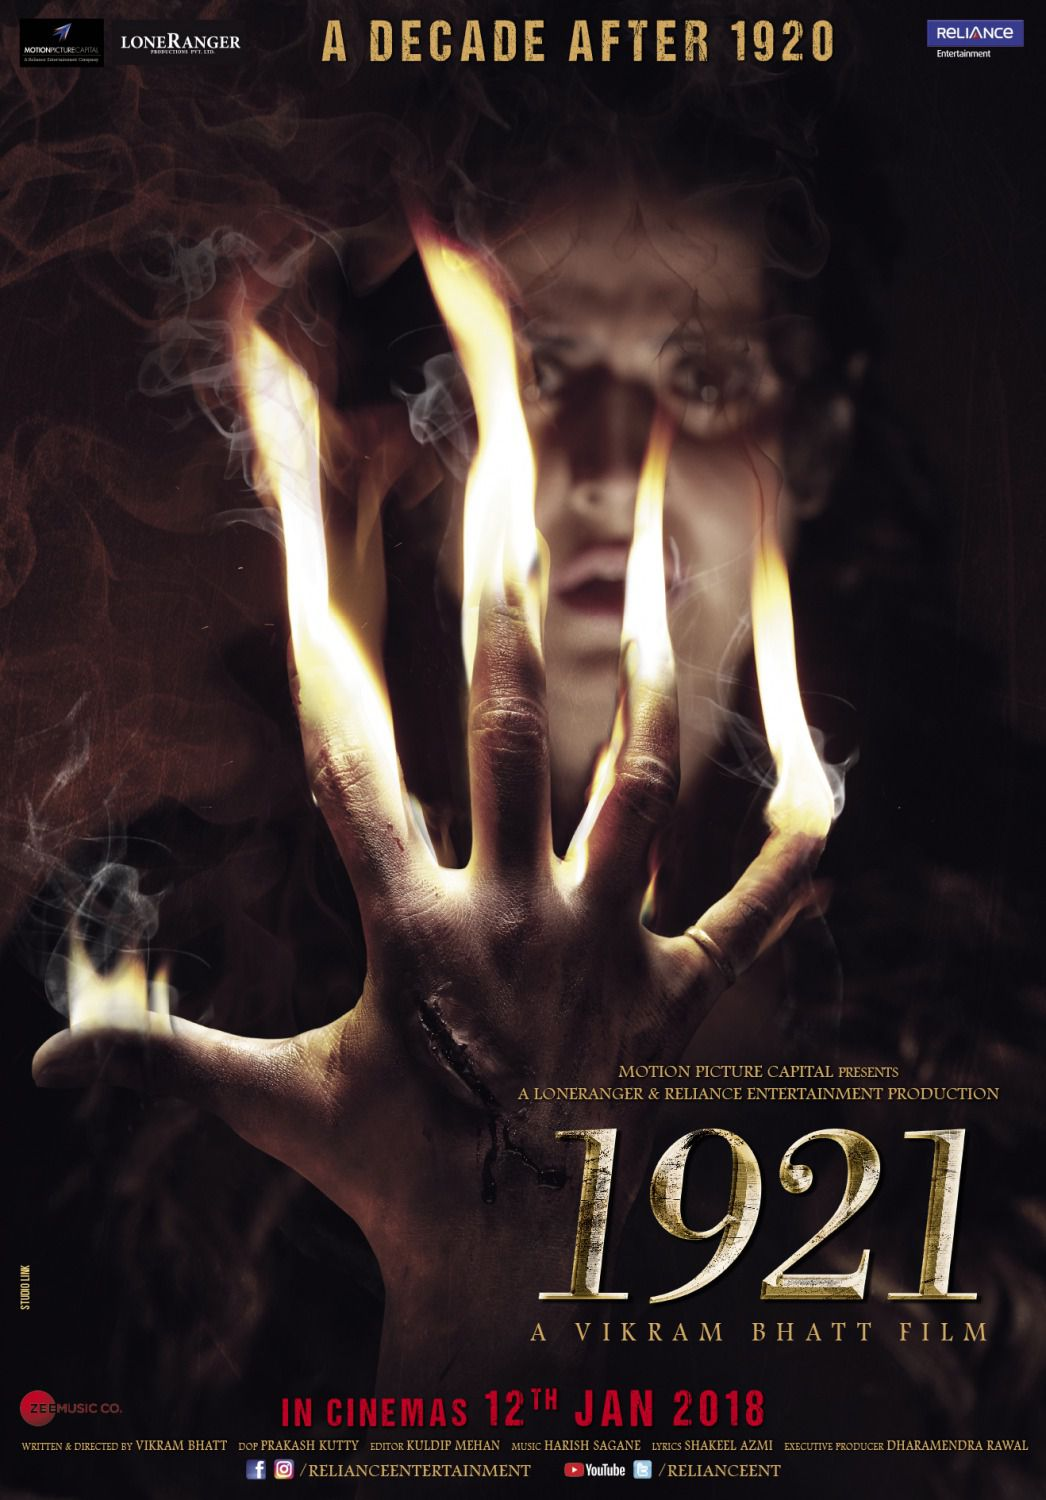 1921 horror film by Vikram Bhatt - film poster - hand on fire